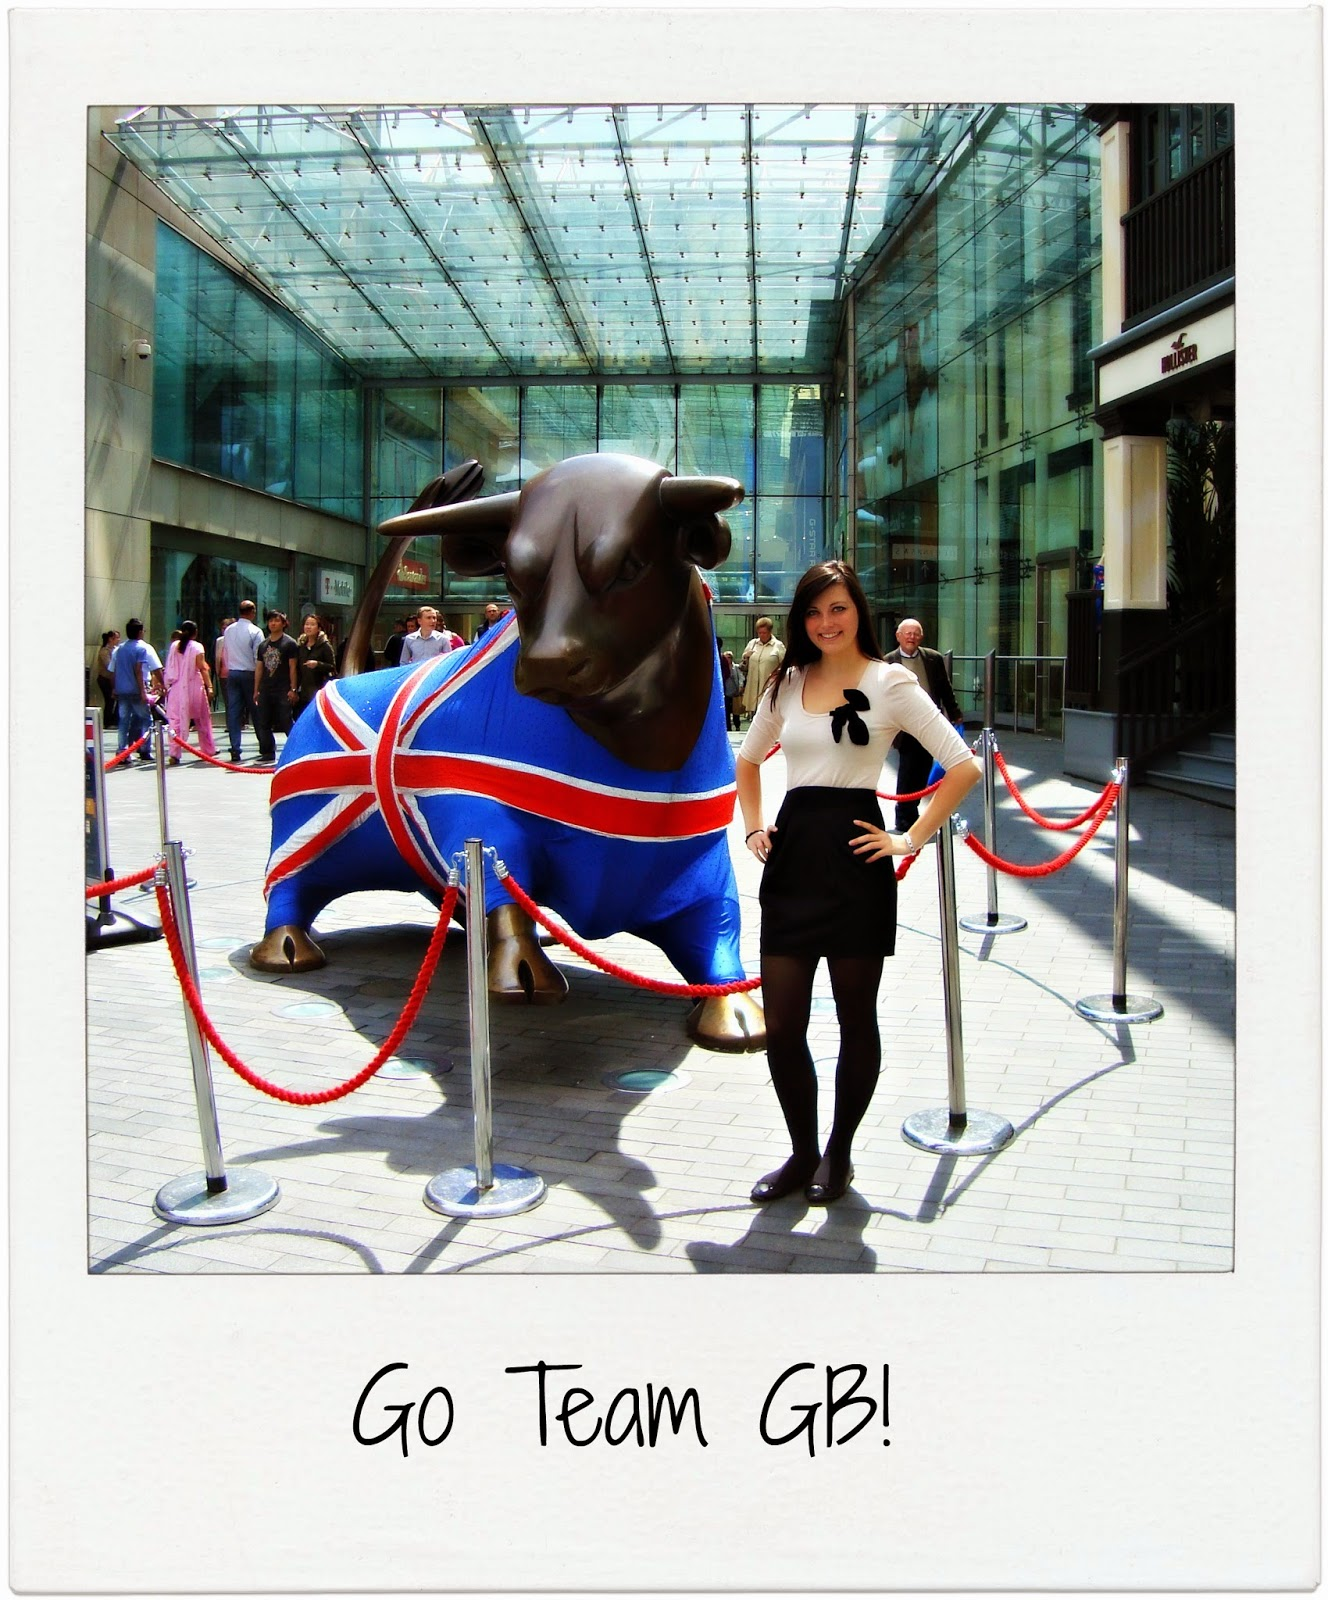 The Bull in Birmingham with his Team GB dress